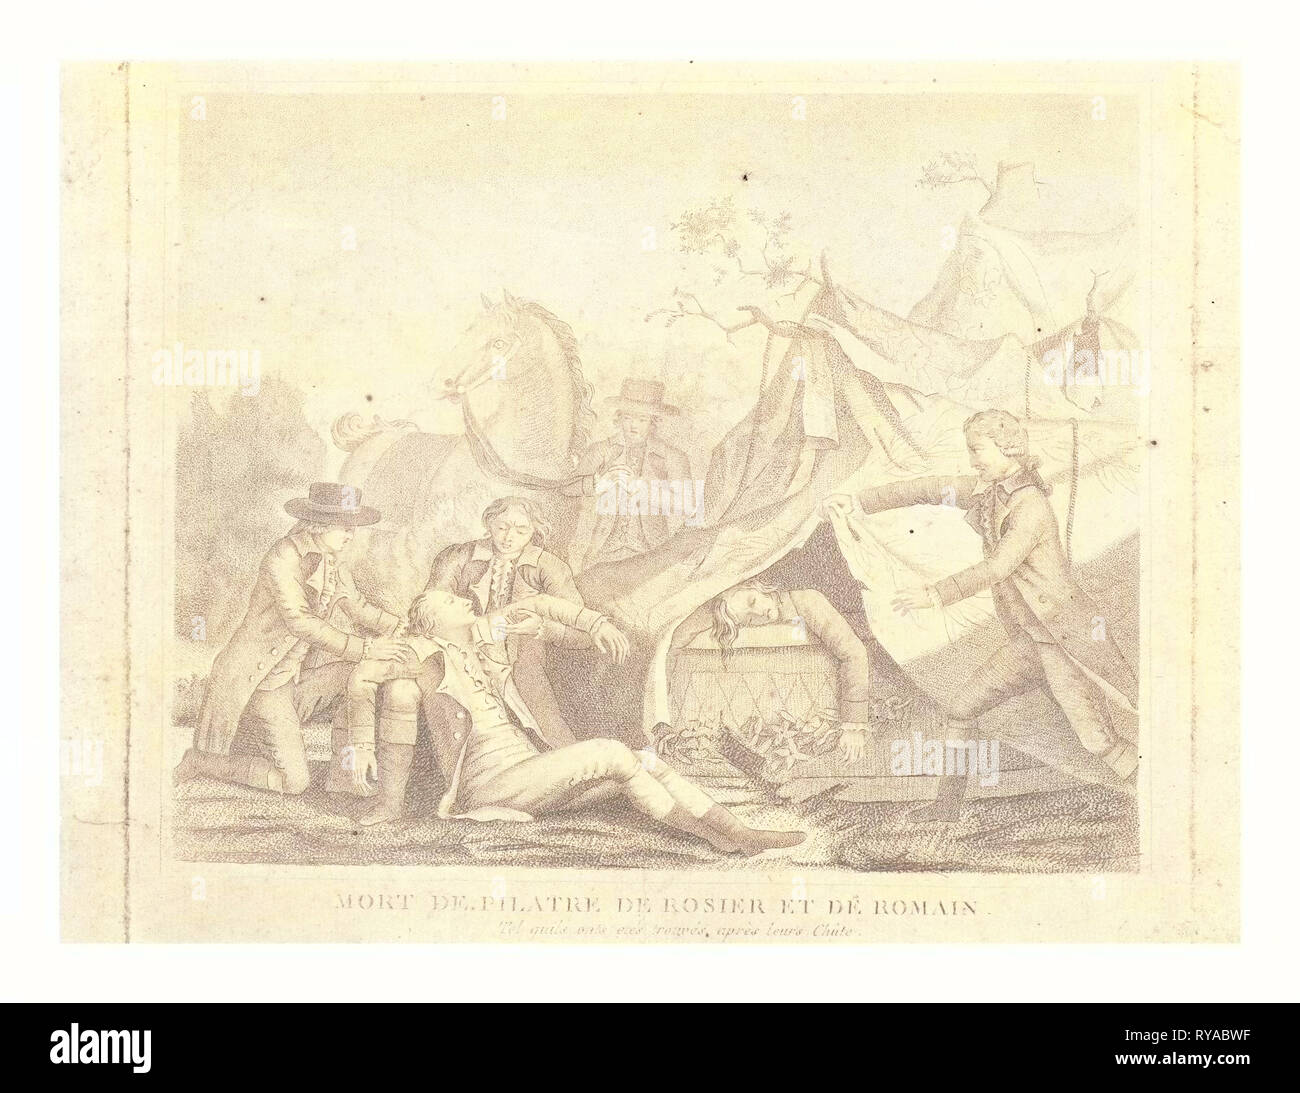 Print Shows the Death of Balloonists Jean-François Pilatre De Rozier and Jules Romain When Their Royal Balloon Crashed Near Boulogne, France, June 15, 1785, in What is Considered the First Aerial Disaster - Stock Image